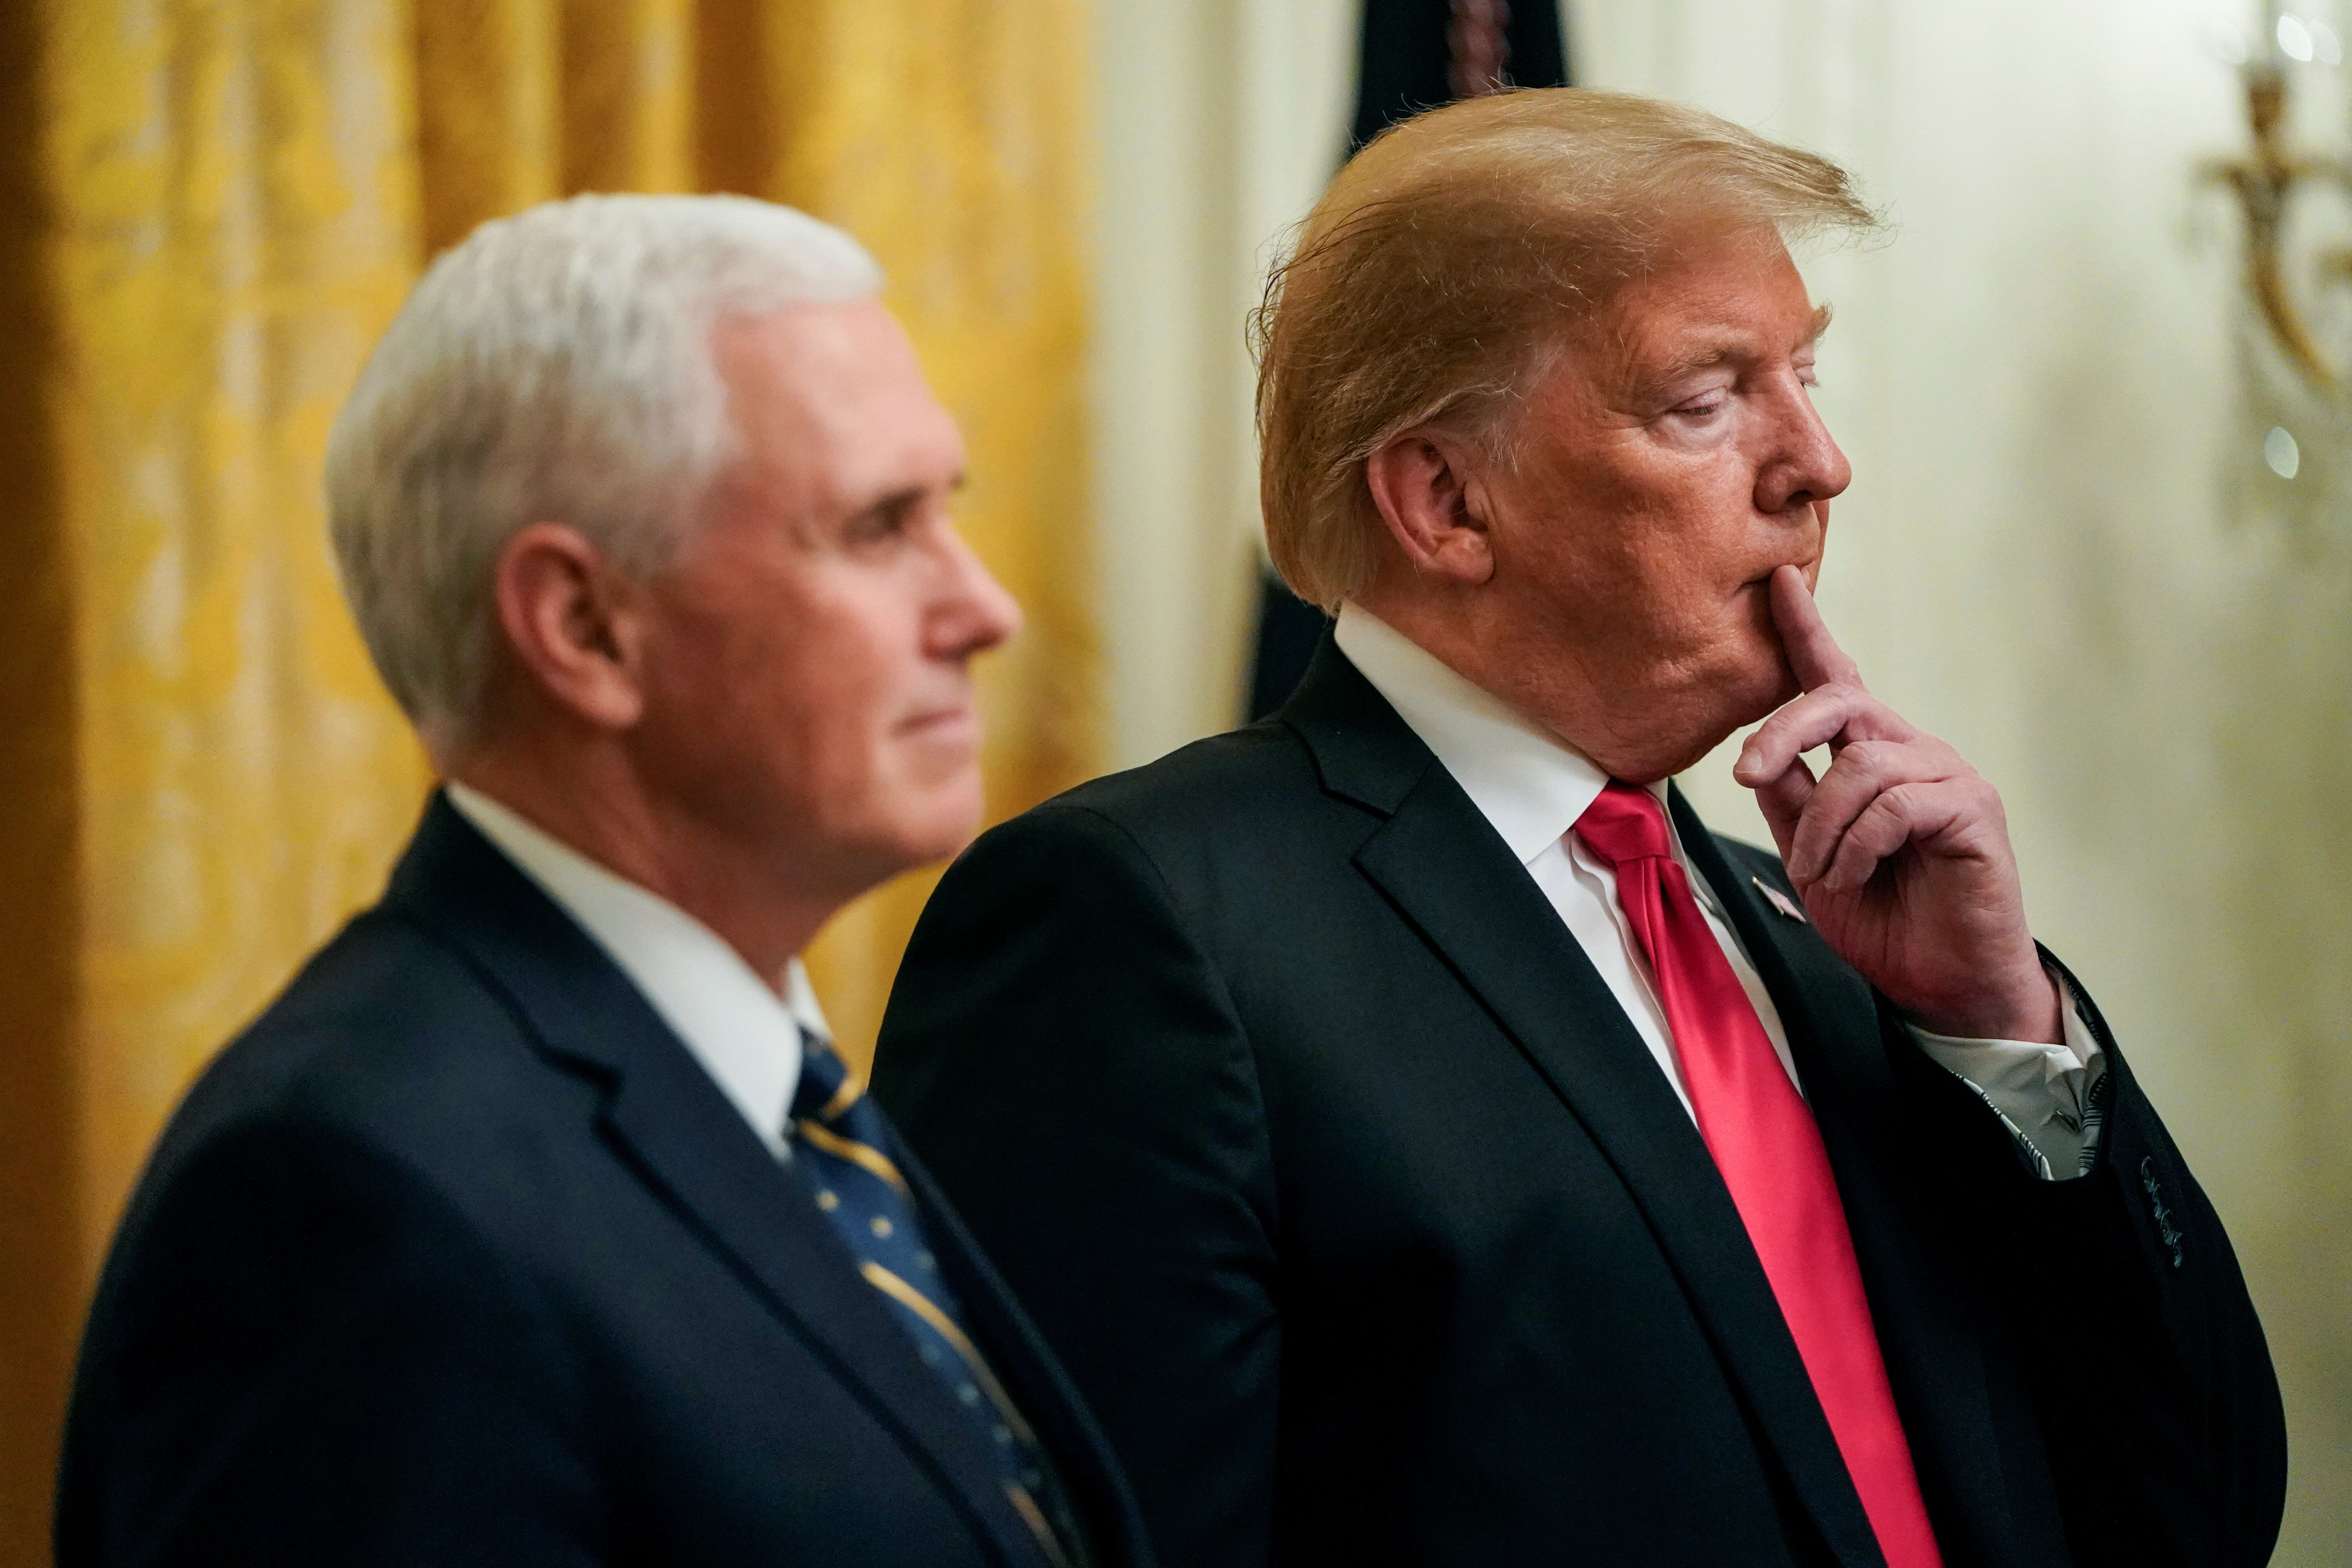 U.S. President Donald Trump stands with U.S. Vice President Mike Pence as he welcomes the 2018 College Football Playoff National Champion Clemson Tigers at the White House in Washington, U.S., January 14, 2019. REUTERS/Joshua Roberts